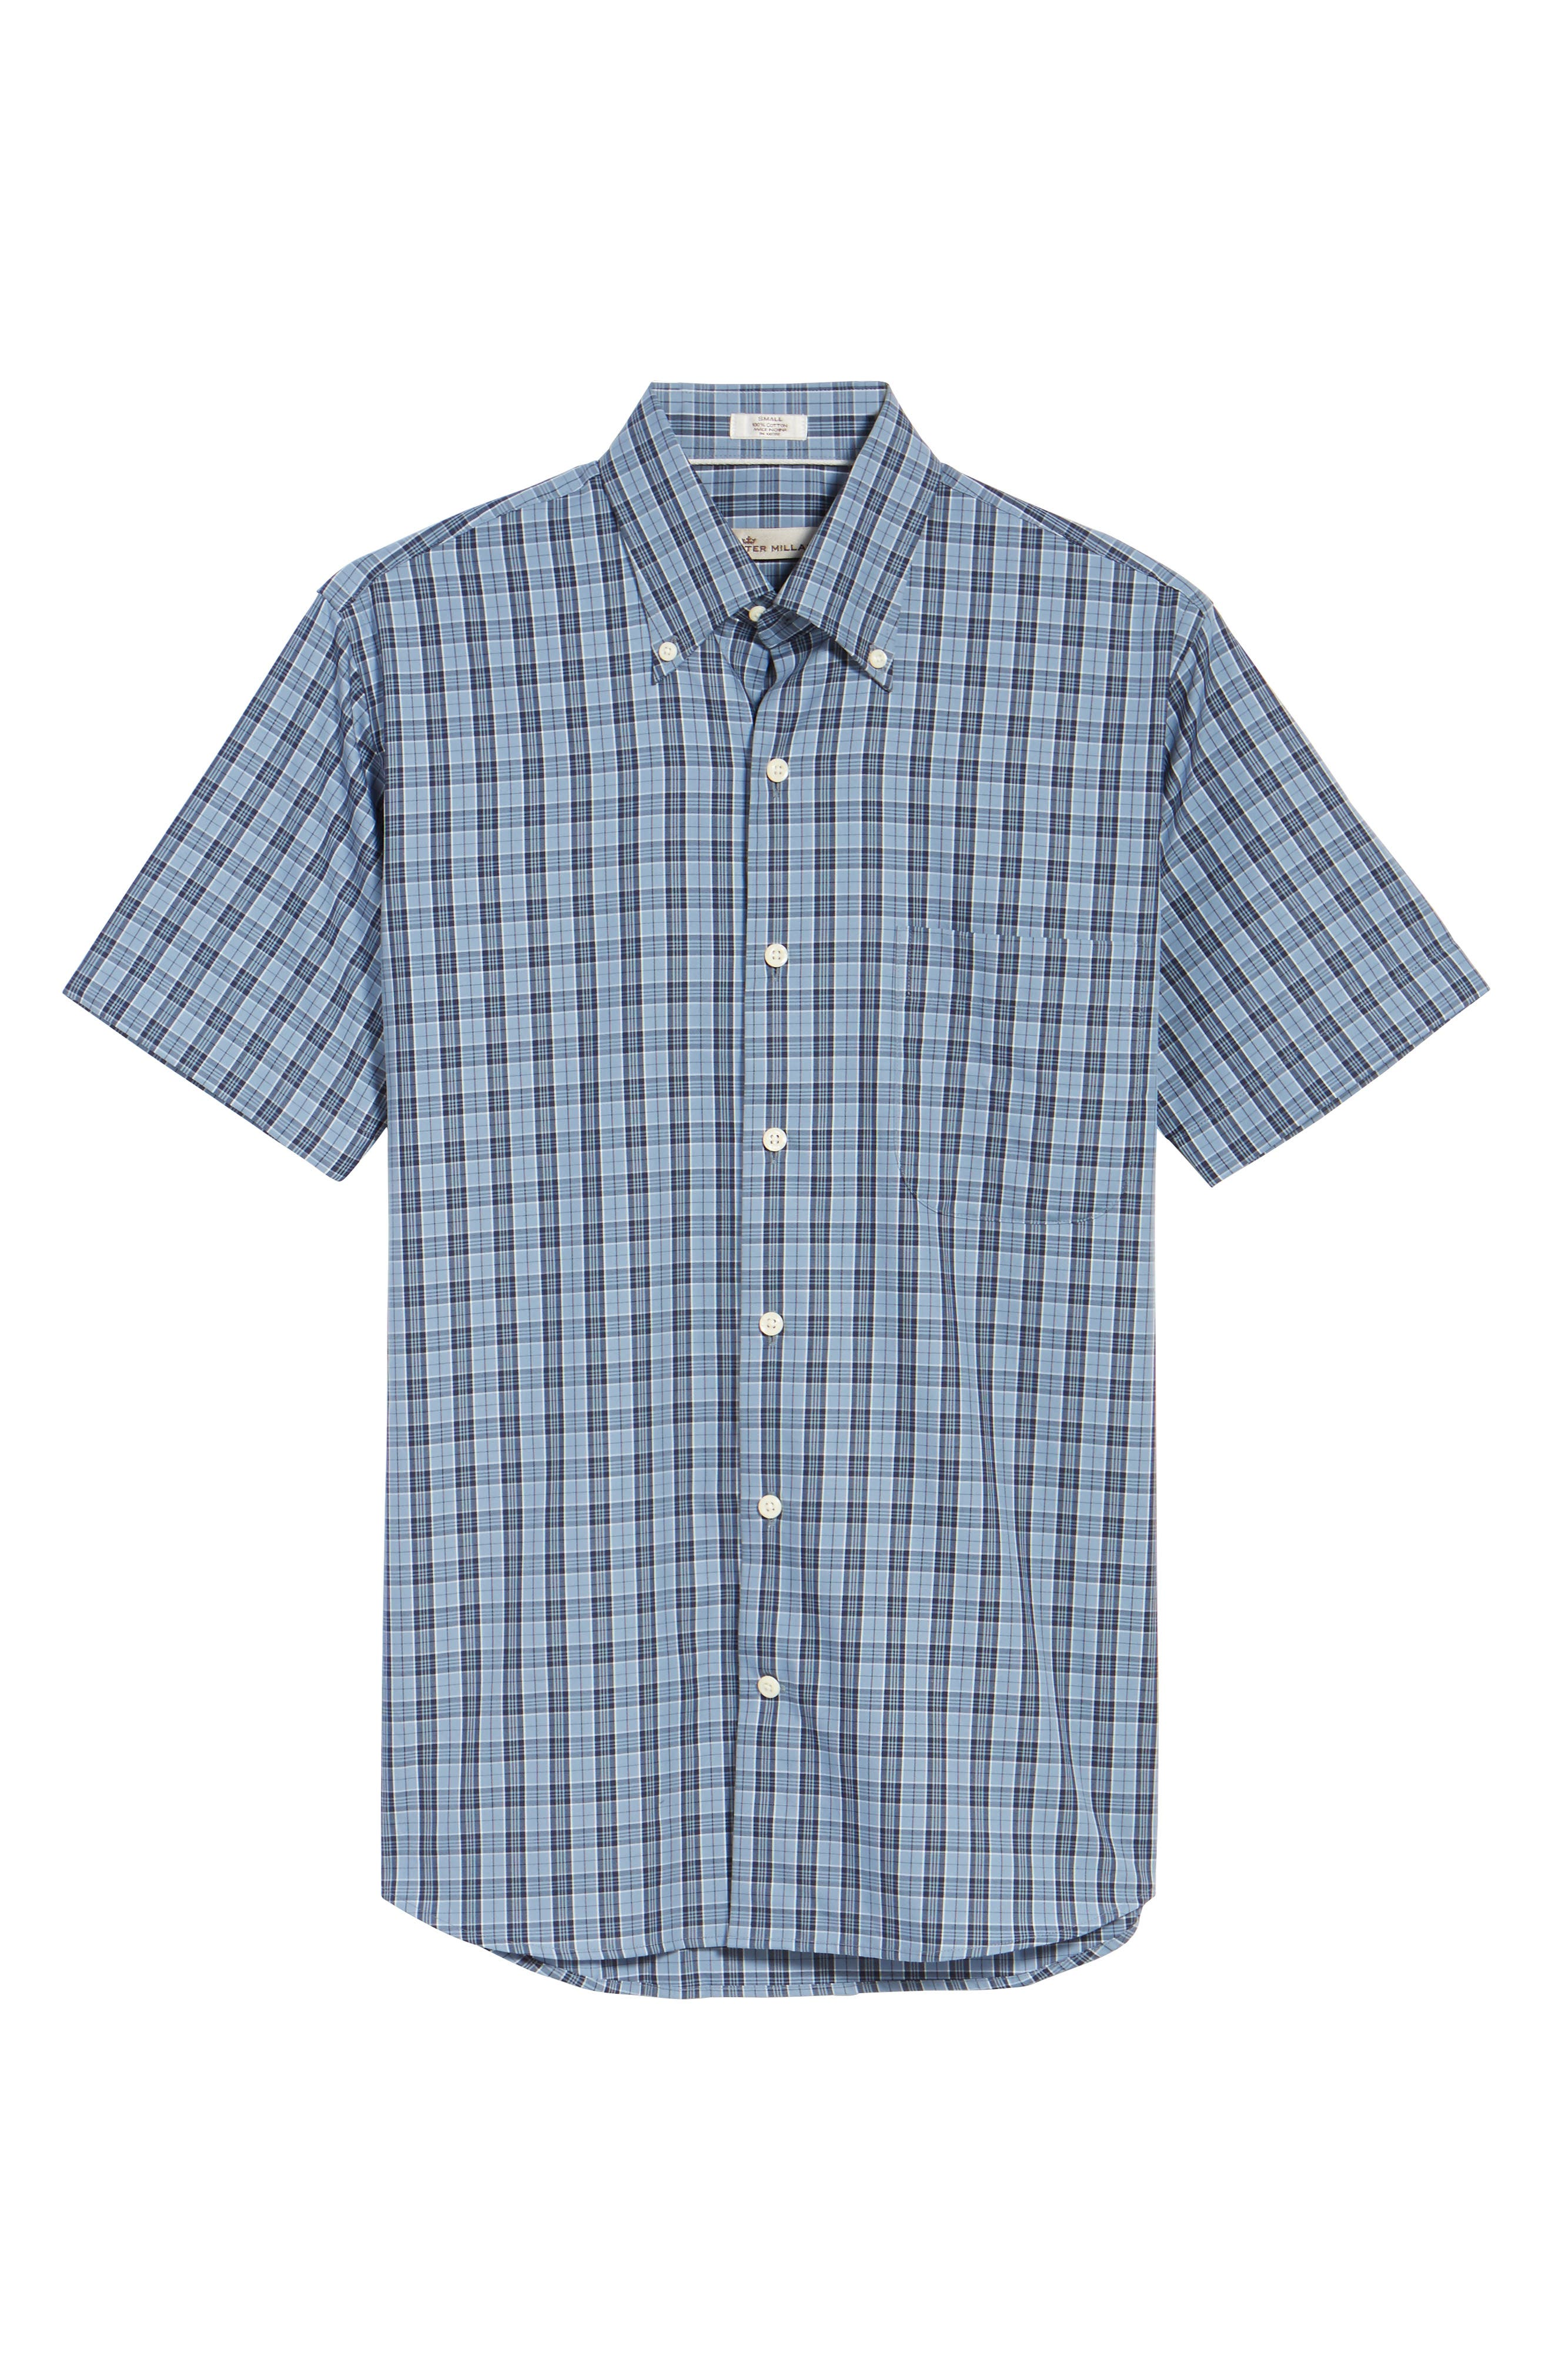 Regular Fit Short Sleeve Stormy Plaid Sport Shirt,                             Alternate thumbnail 6, color,                             439